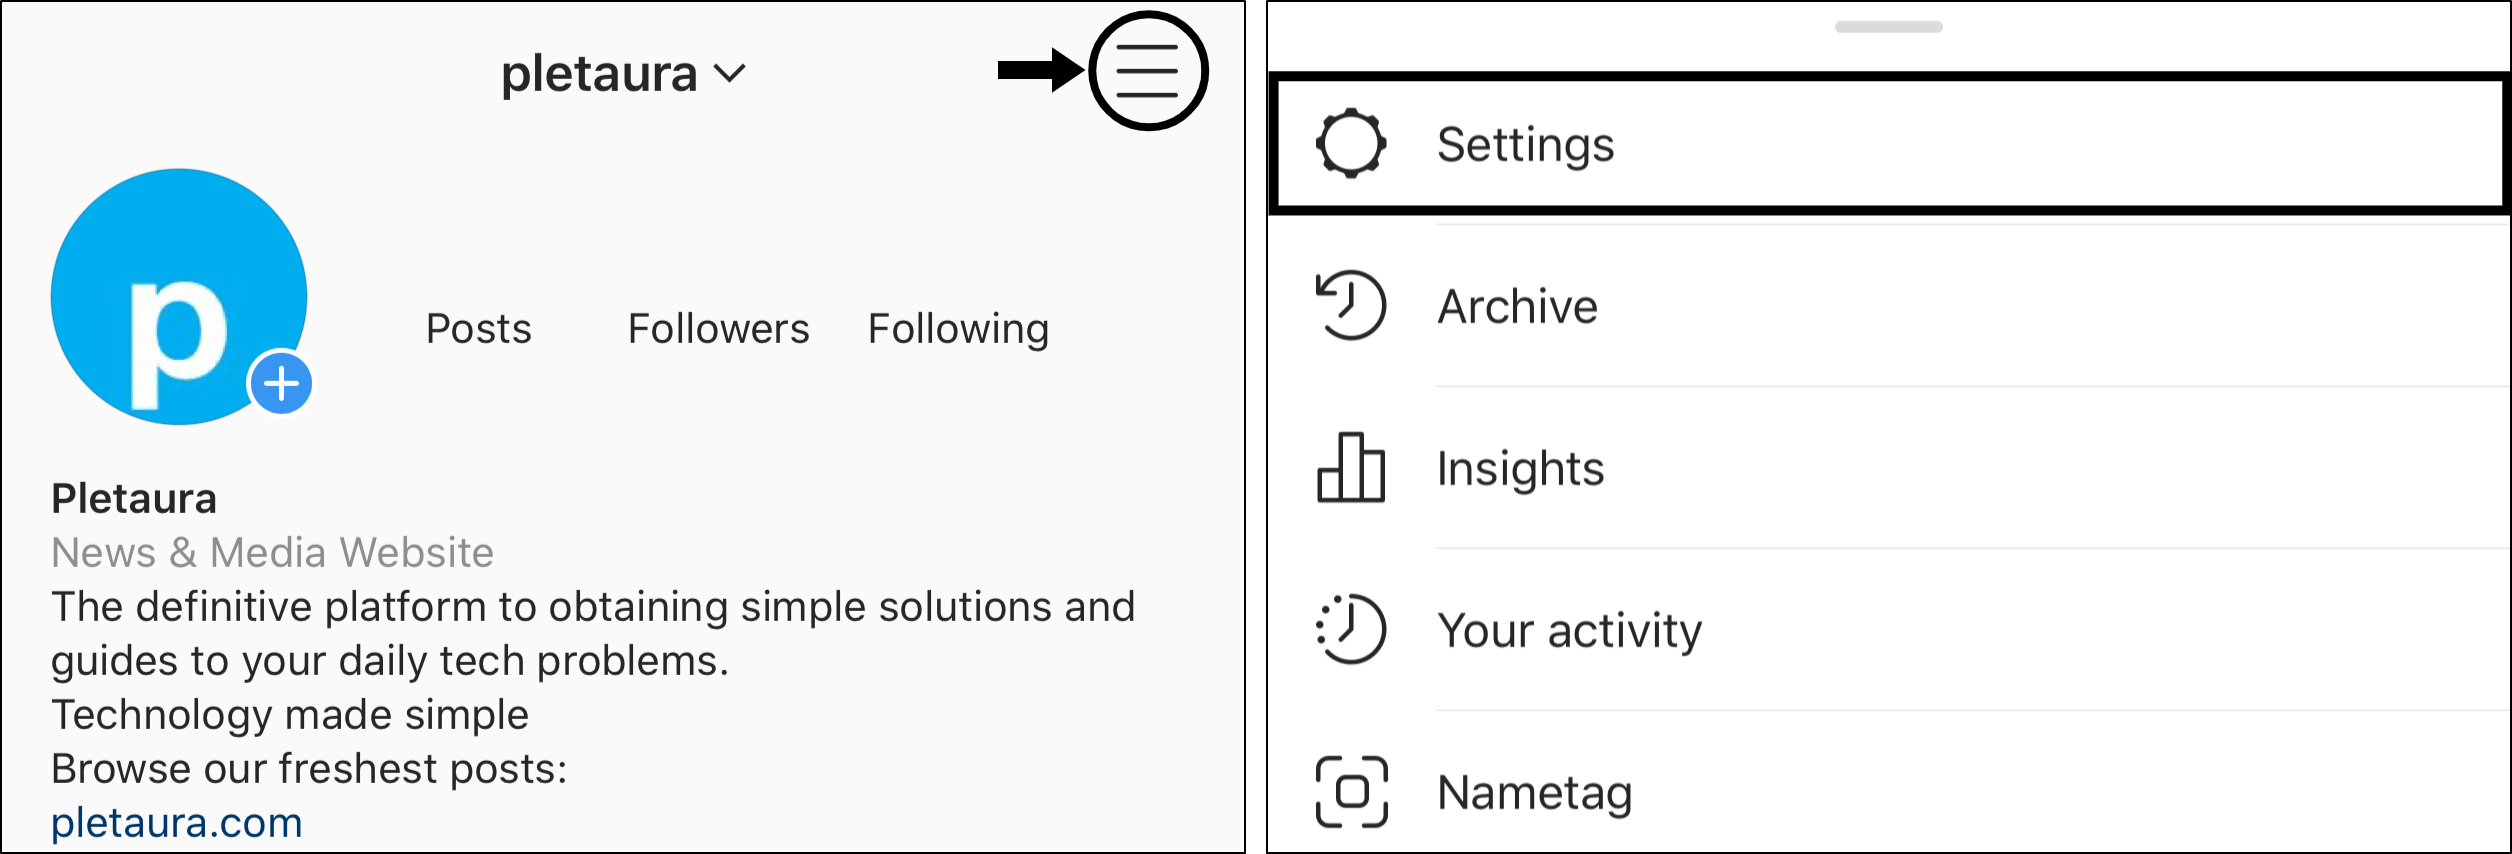 Open Instagram app settings to link facebook and instagram account and fix can't sign in or log in to Instagram